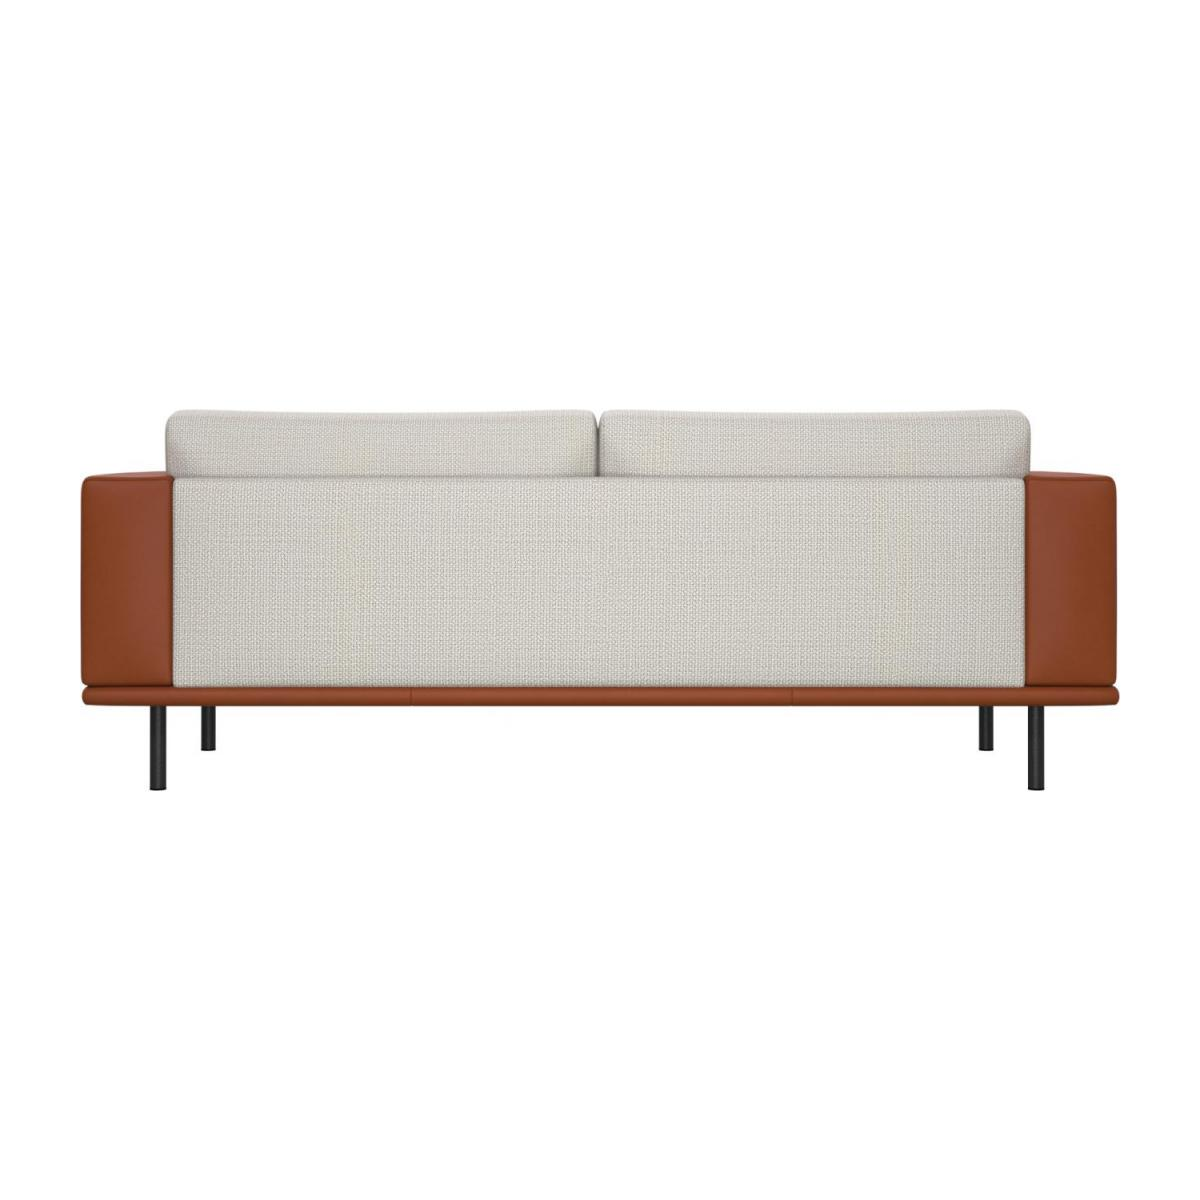 3 seater sofa in Fasoli fabric, snow white with base and armrests in brown leather n°4